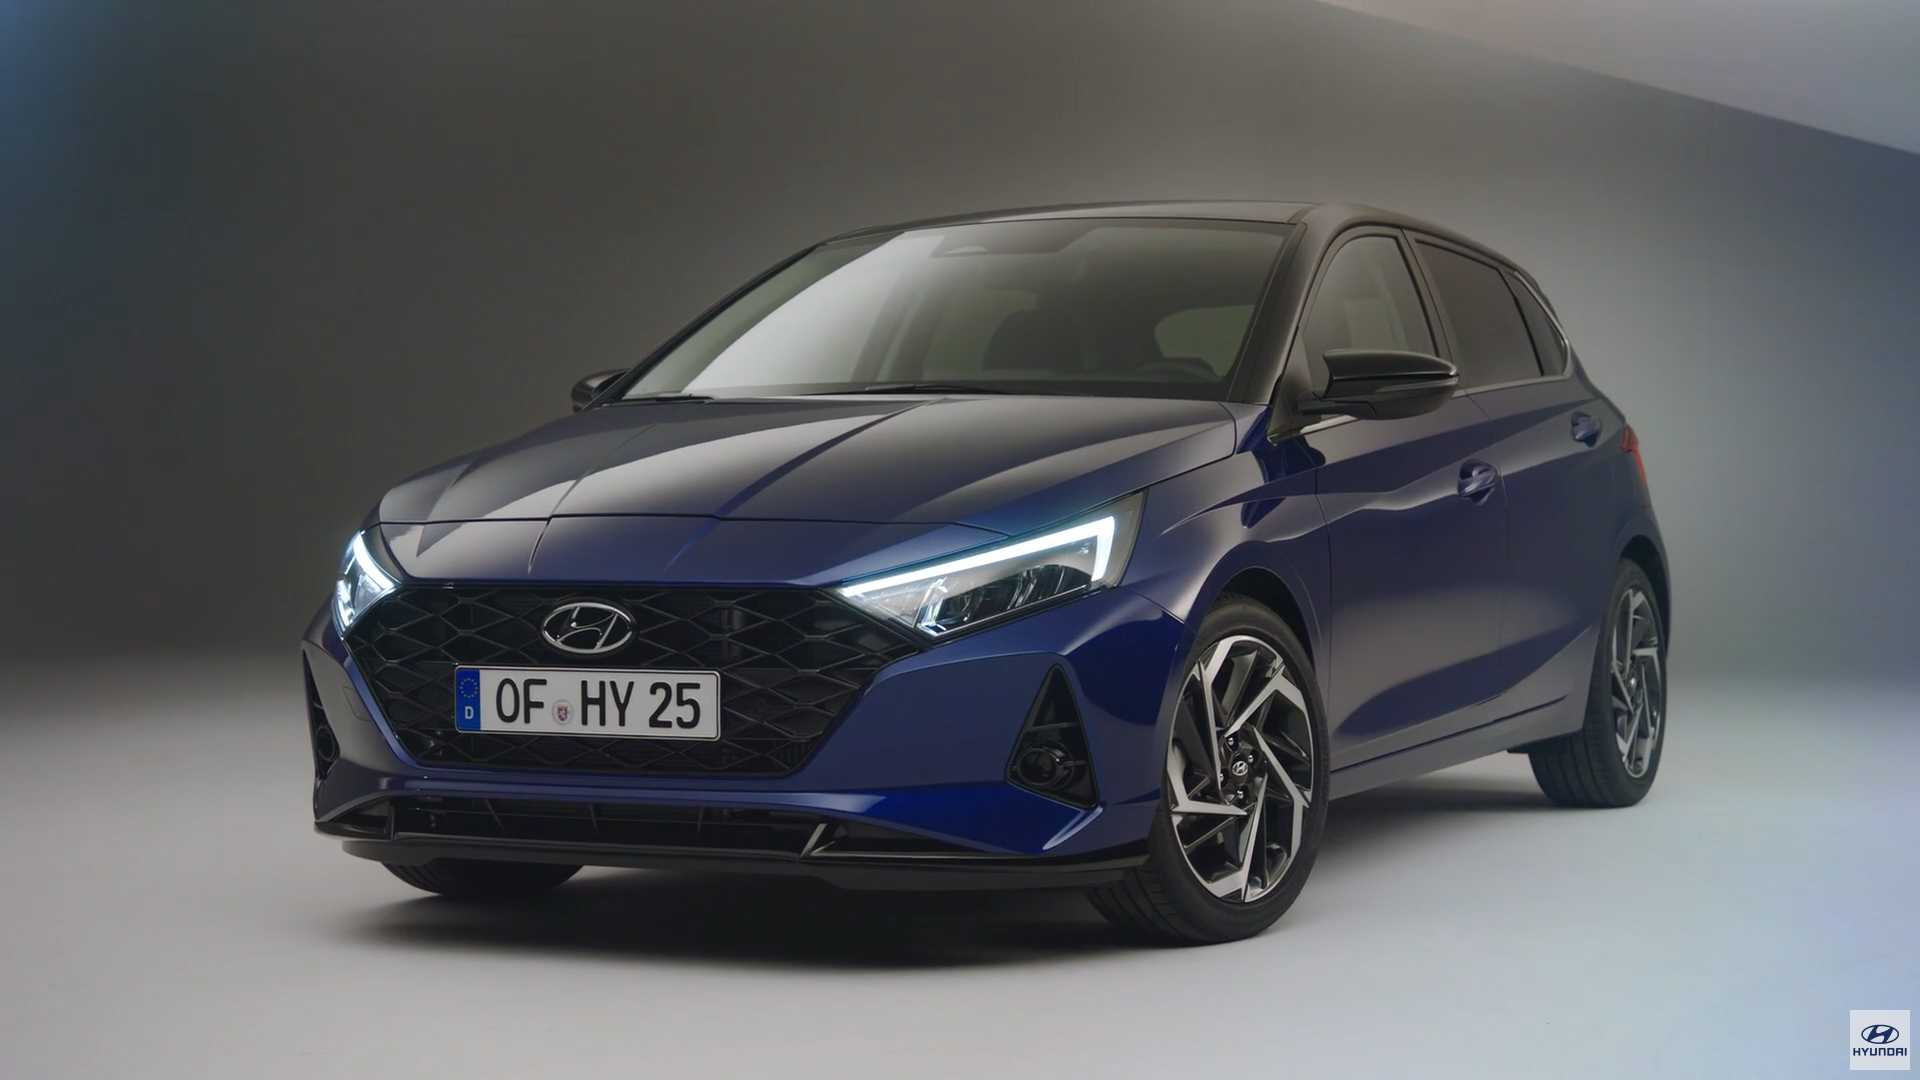 The Latest Hyundai i20 Hatchback- The Sensuous Sportiness 3